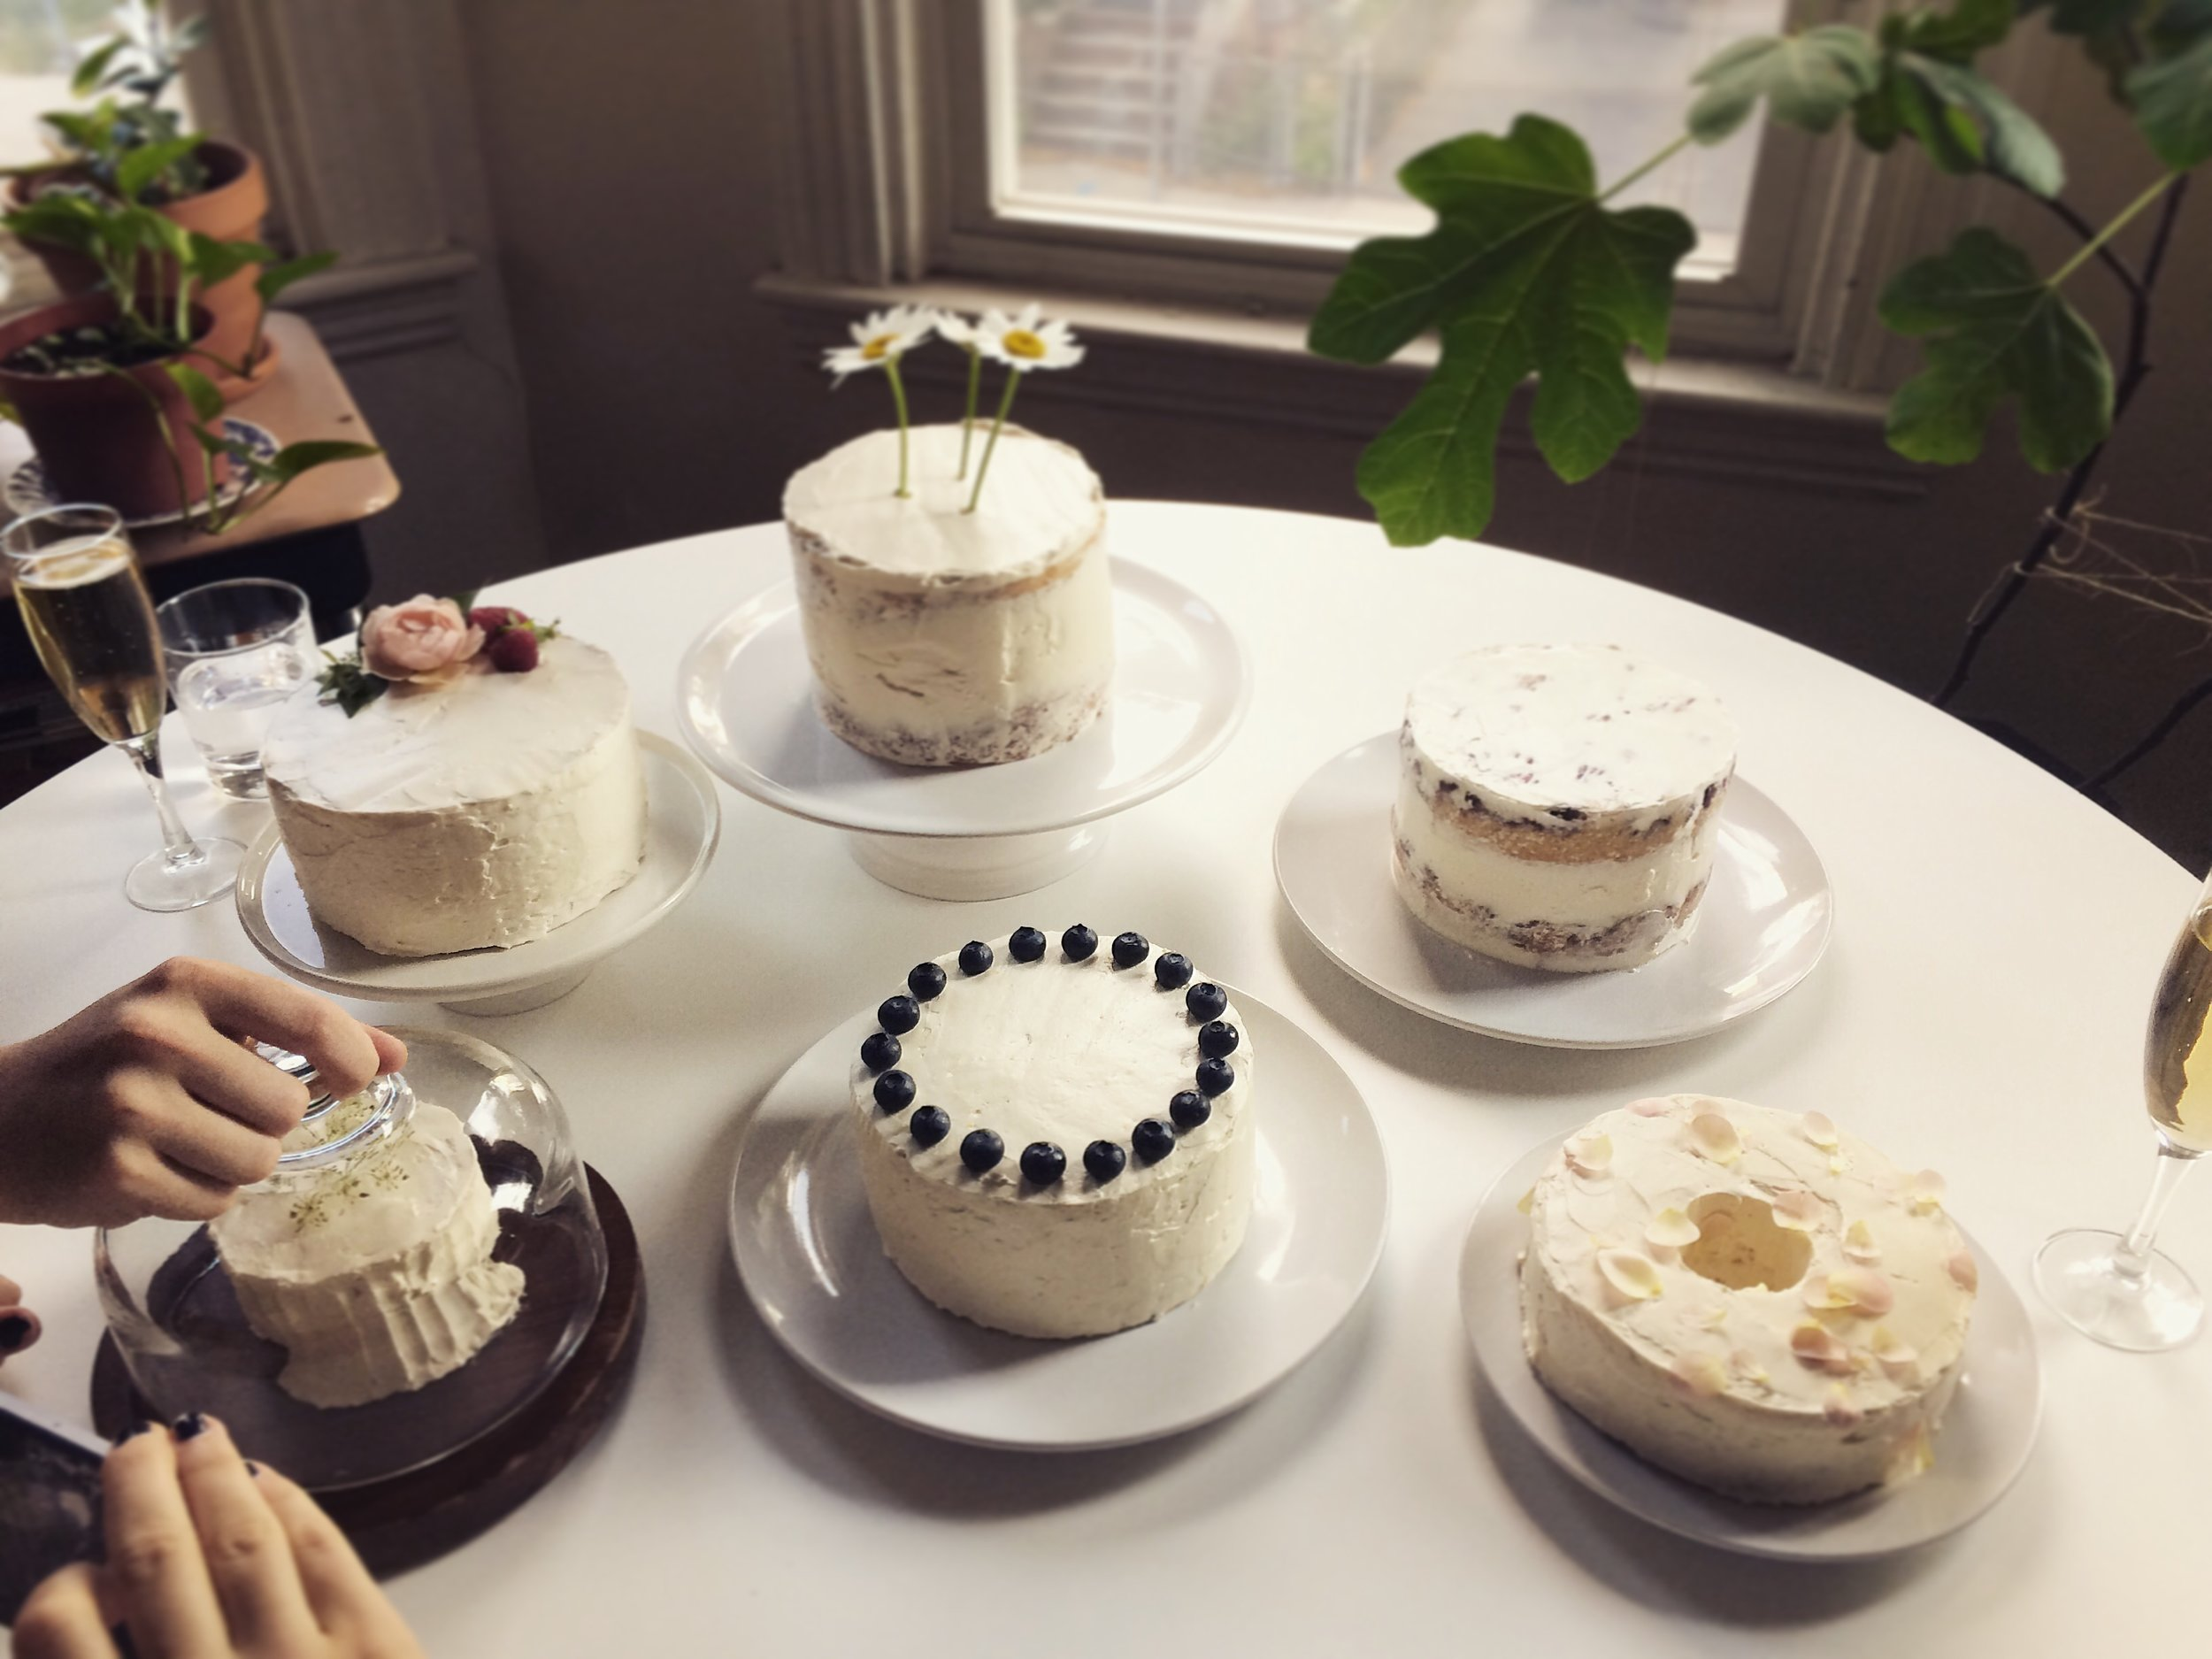 6-inch Cakes for Wedding Cake Tasting